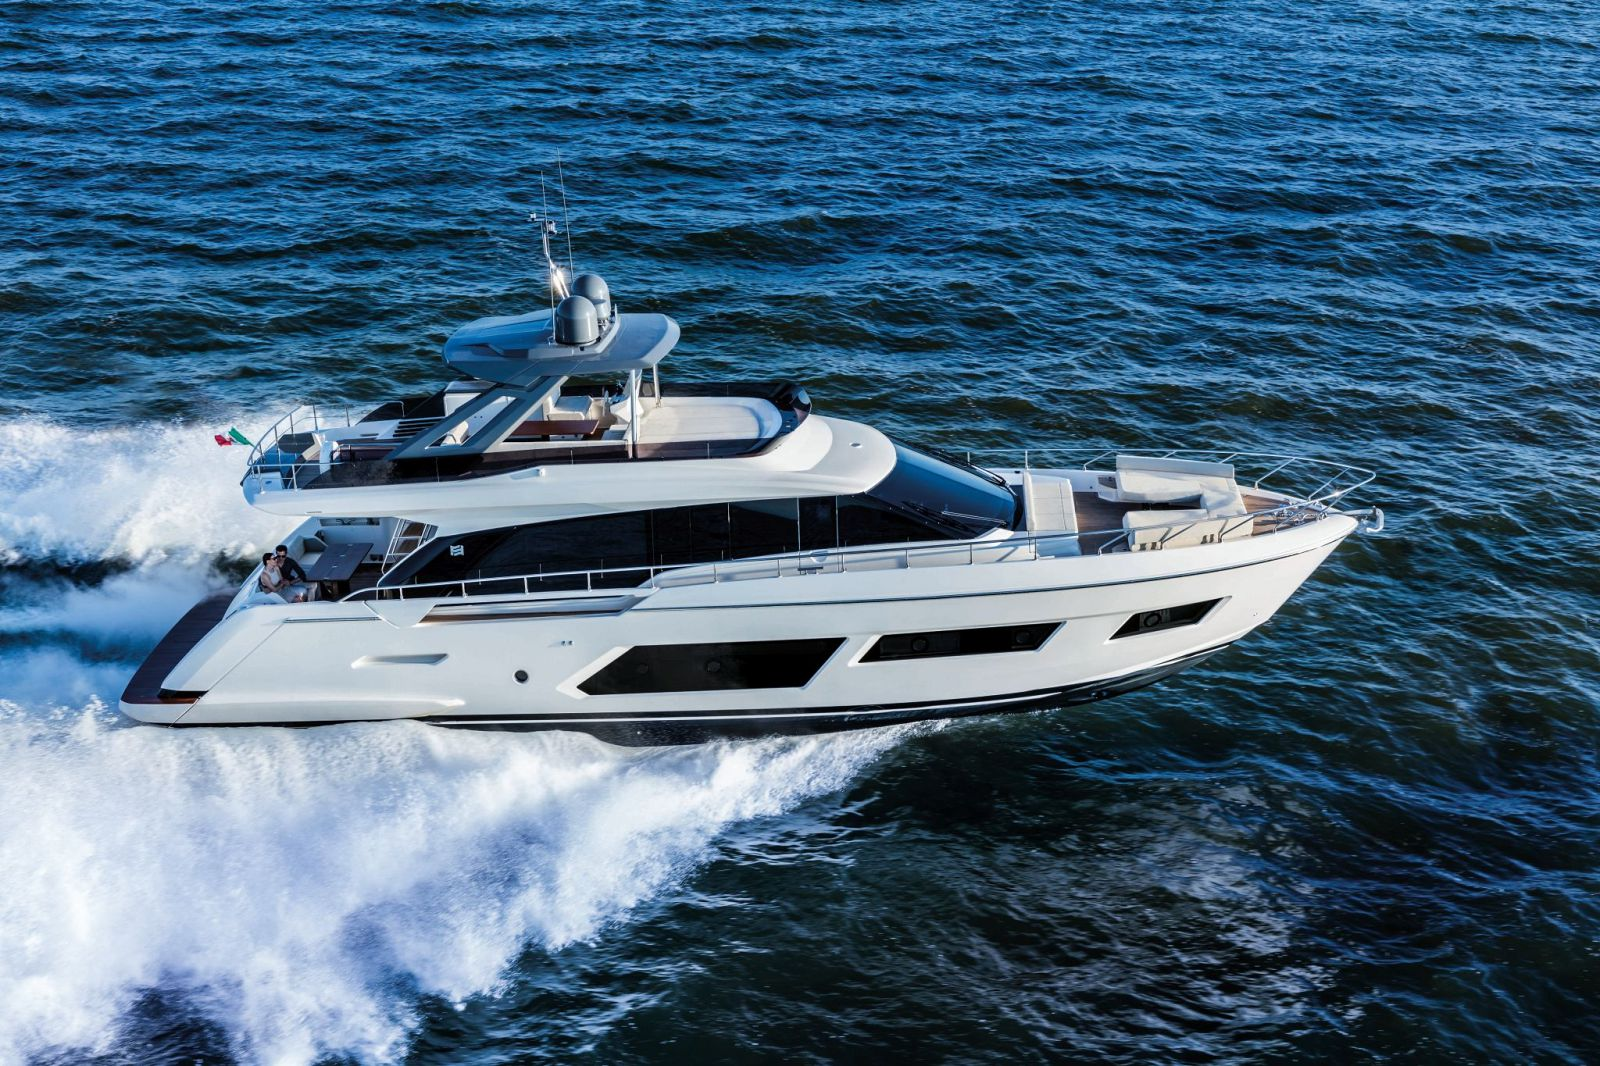 Ferretti Yachts 670 Exterior Running Shot - New Luxury Yacht for Sale >